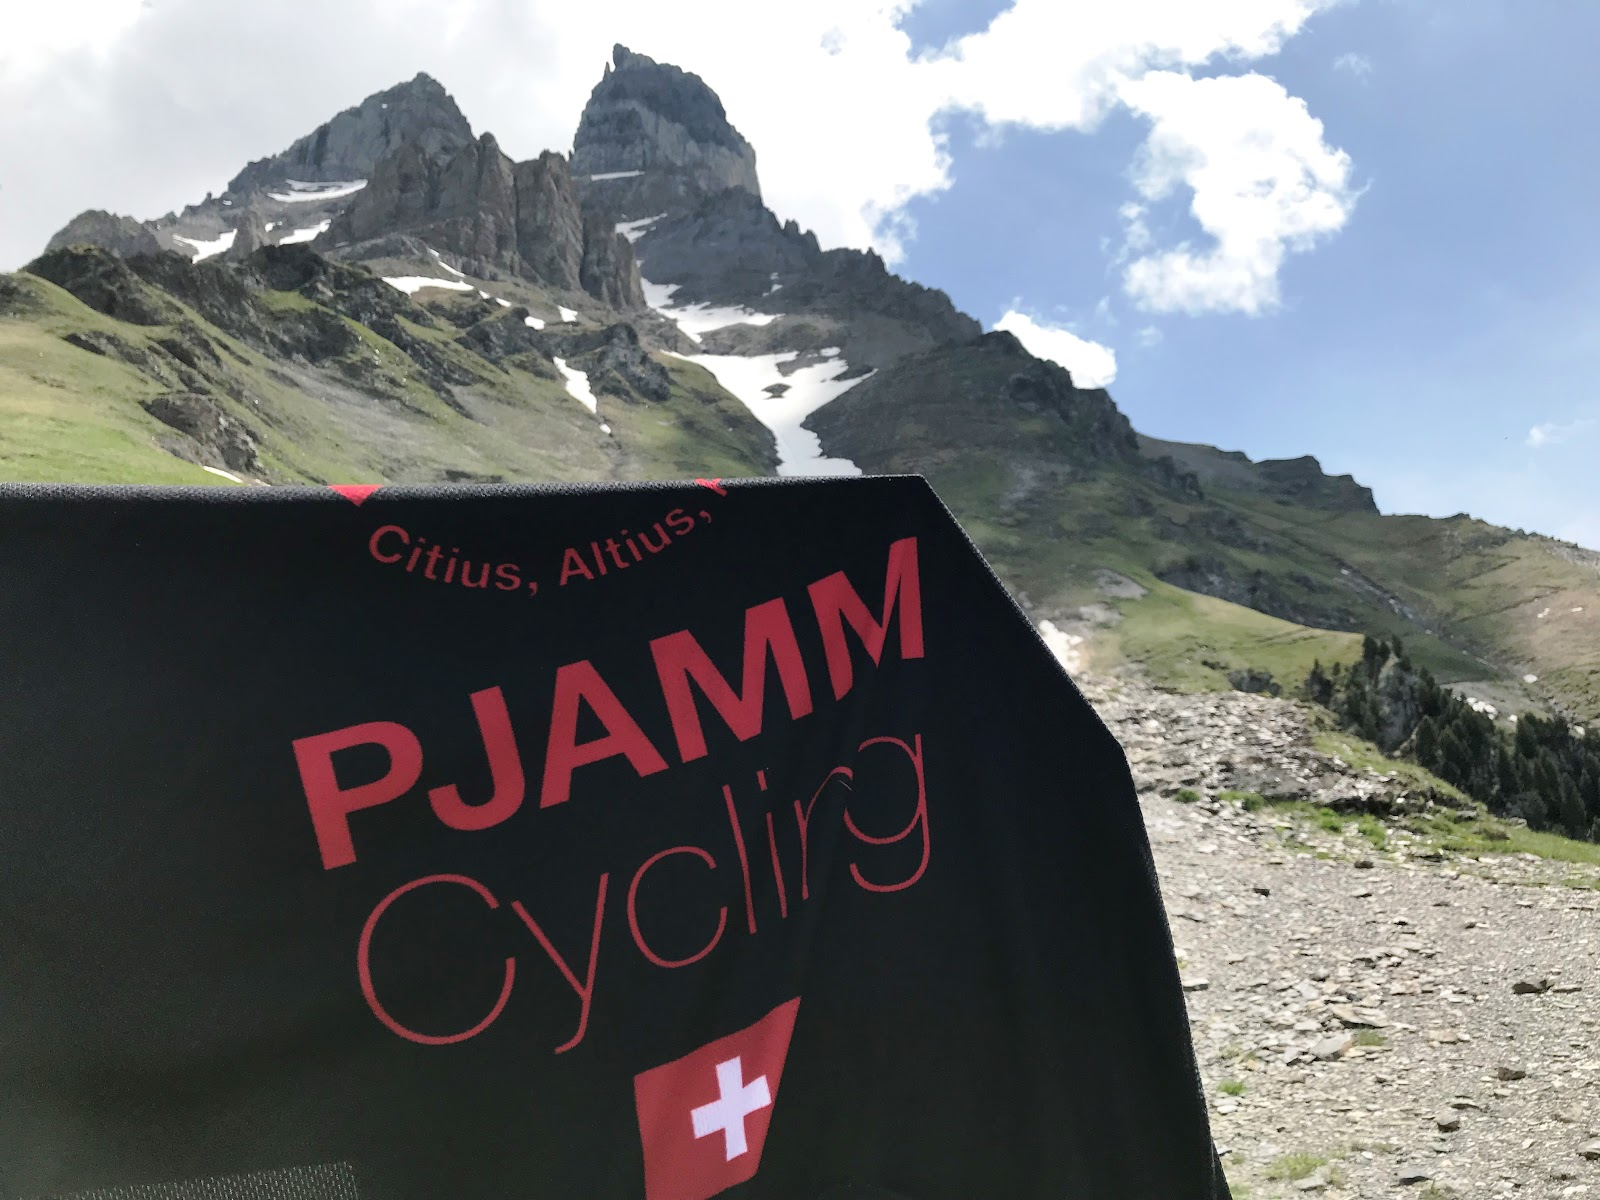 Climbing Rionda with bicycle - PJAMM jersey with La Cime de l'Est in background